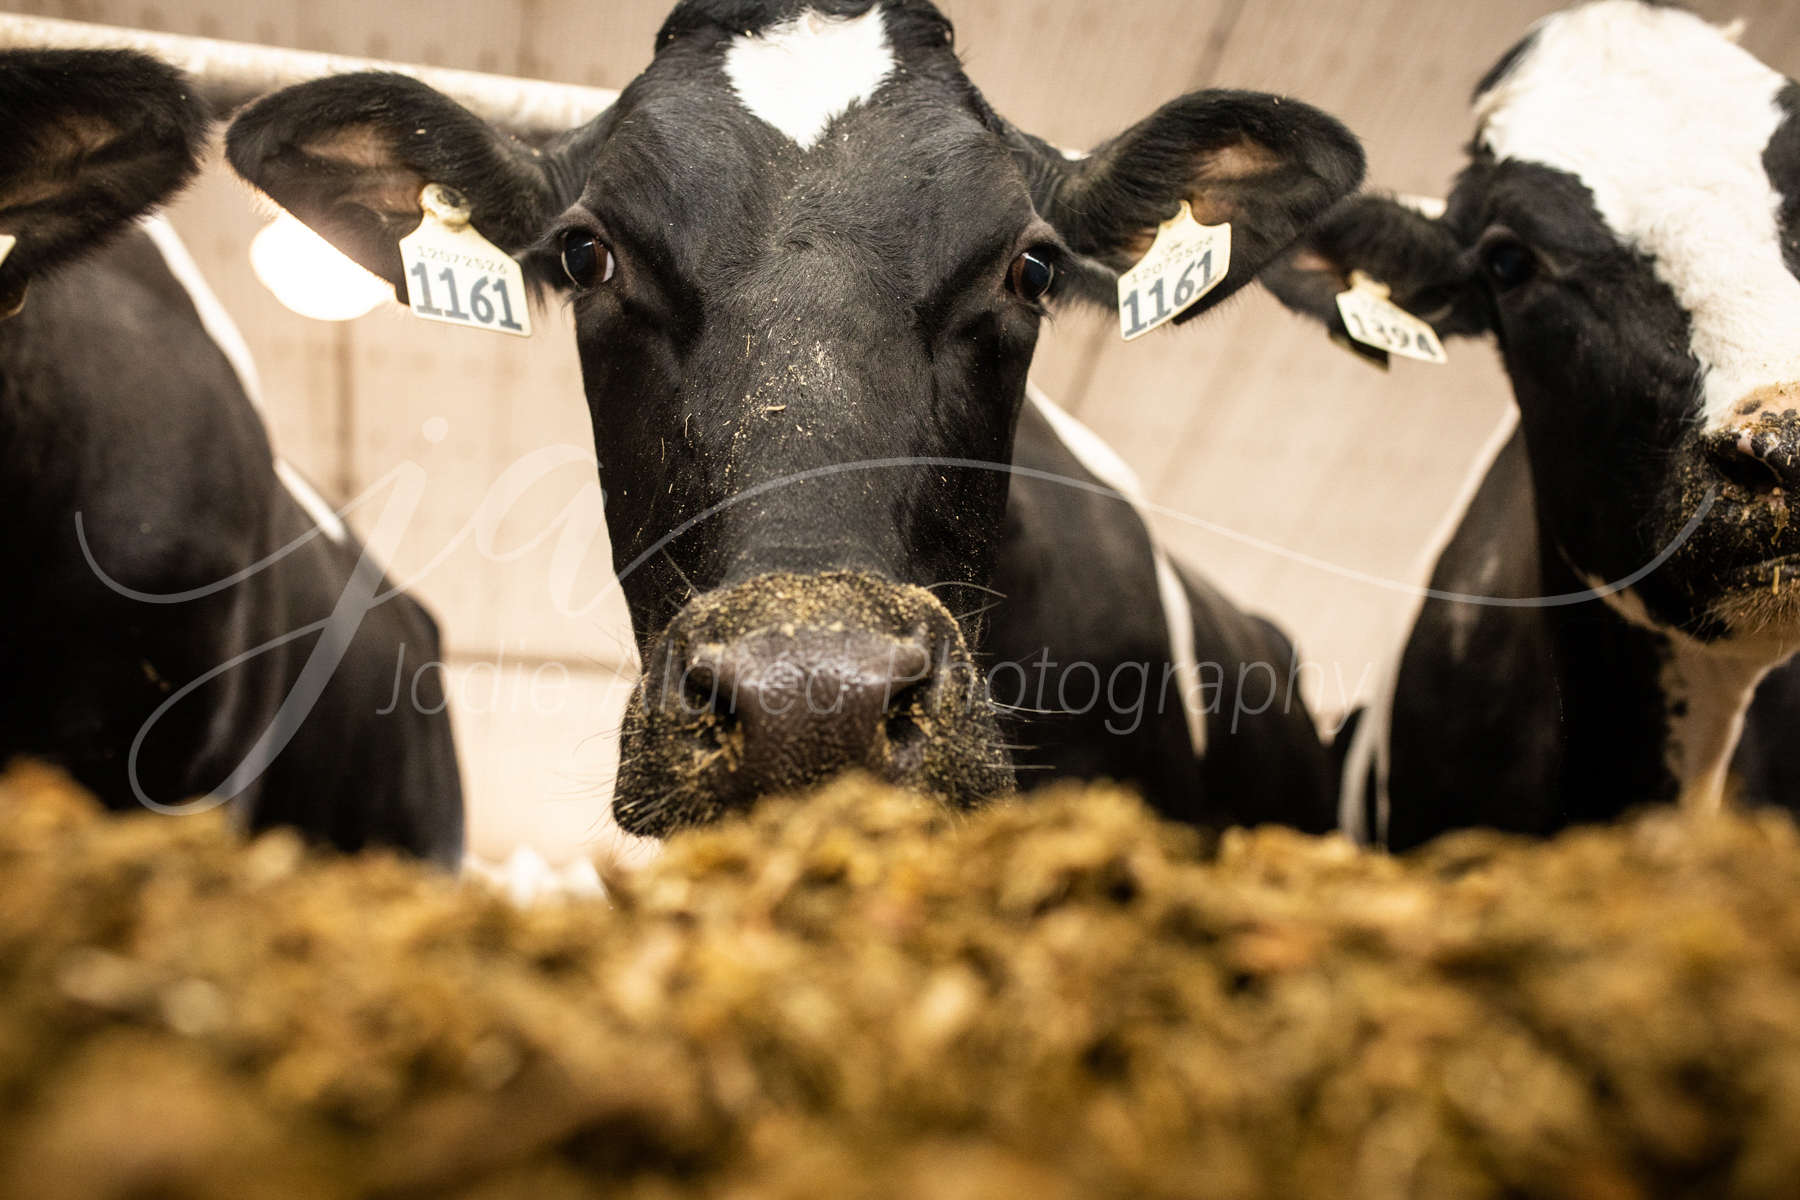 Jodie-Aldred-Photography-Ontario-Agriculture-Photographer-Farm-Outdoors-Nature-Middlesex-Elgin-Chathma-Kent-Huron-Photographer-dairy-cattle-barn-feed-eat-food-winter.jpg